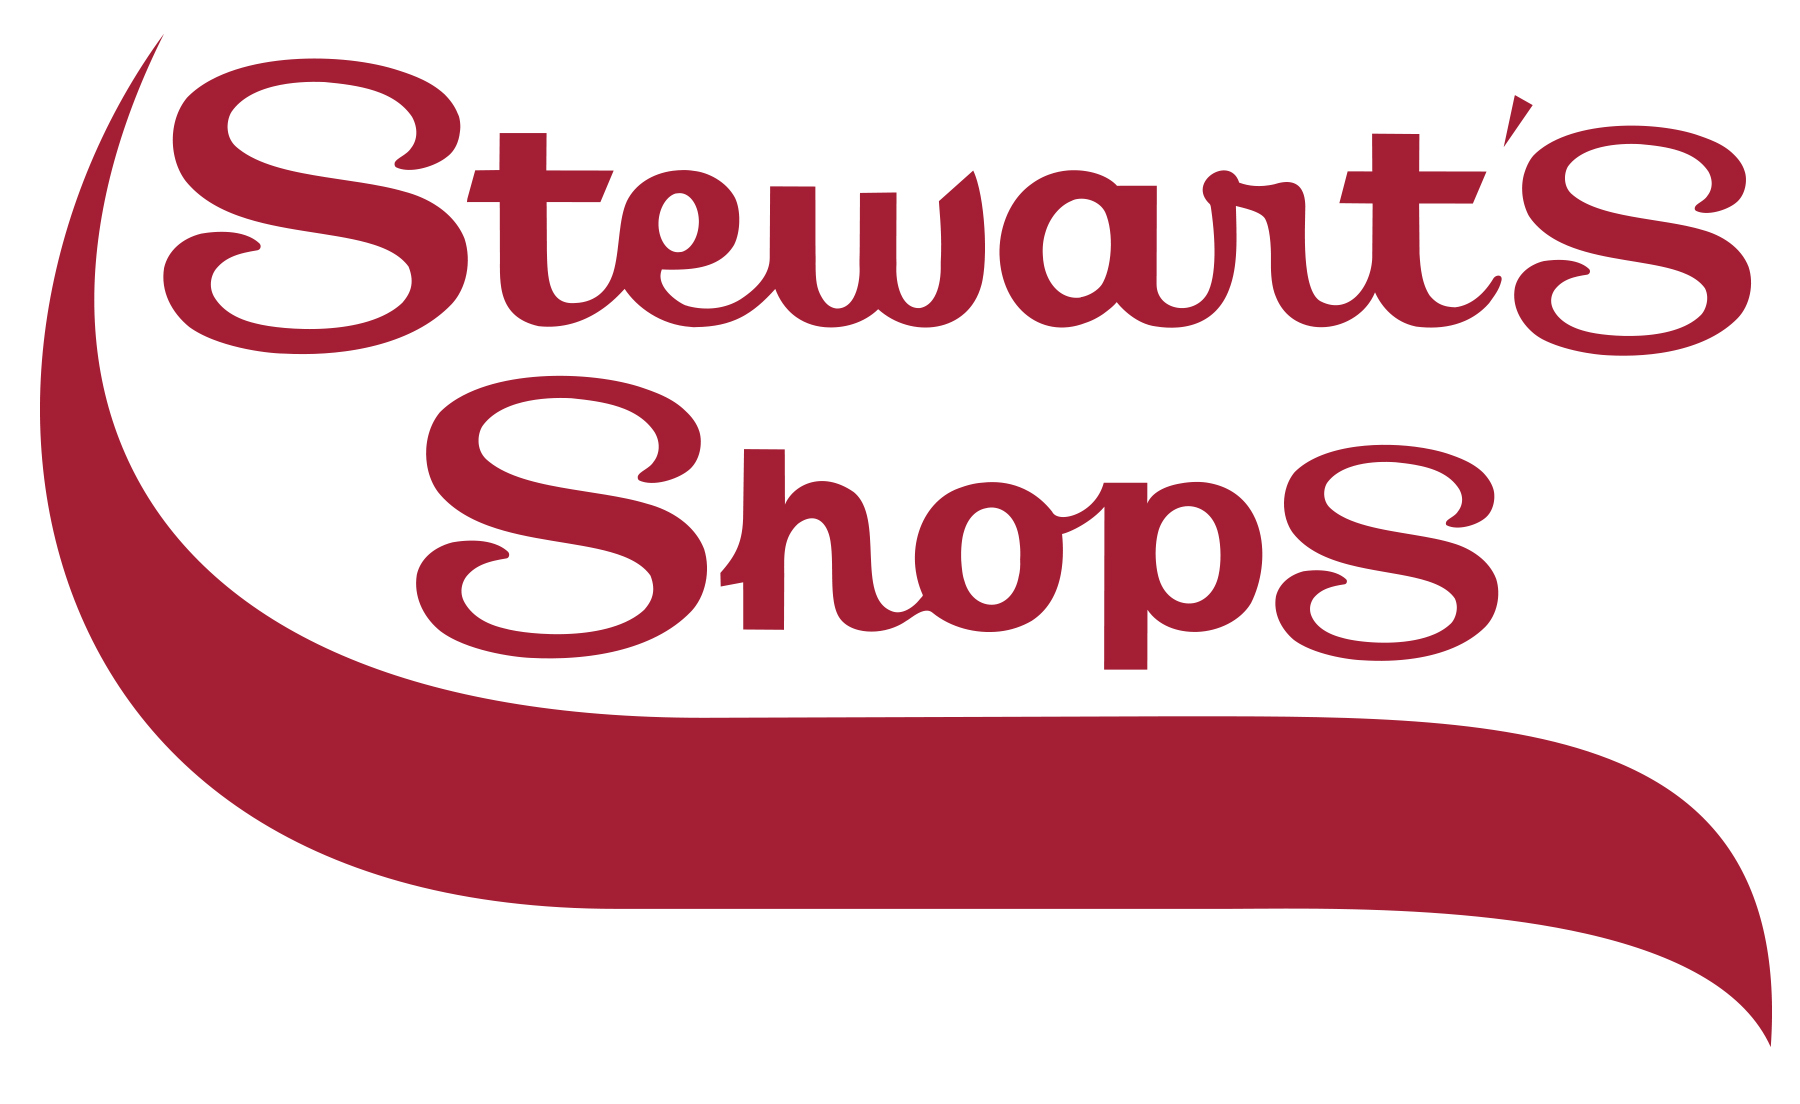 Stewarts Shops with Wave Logo 300 dpi.jpg